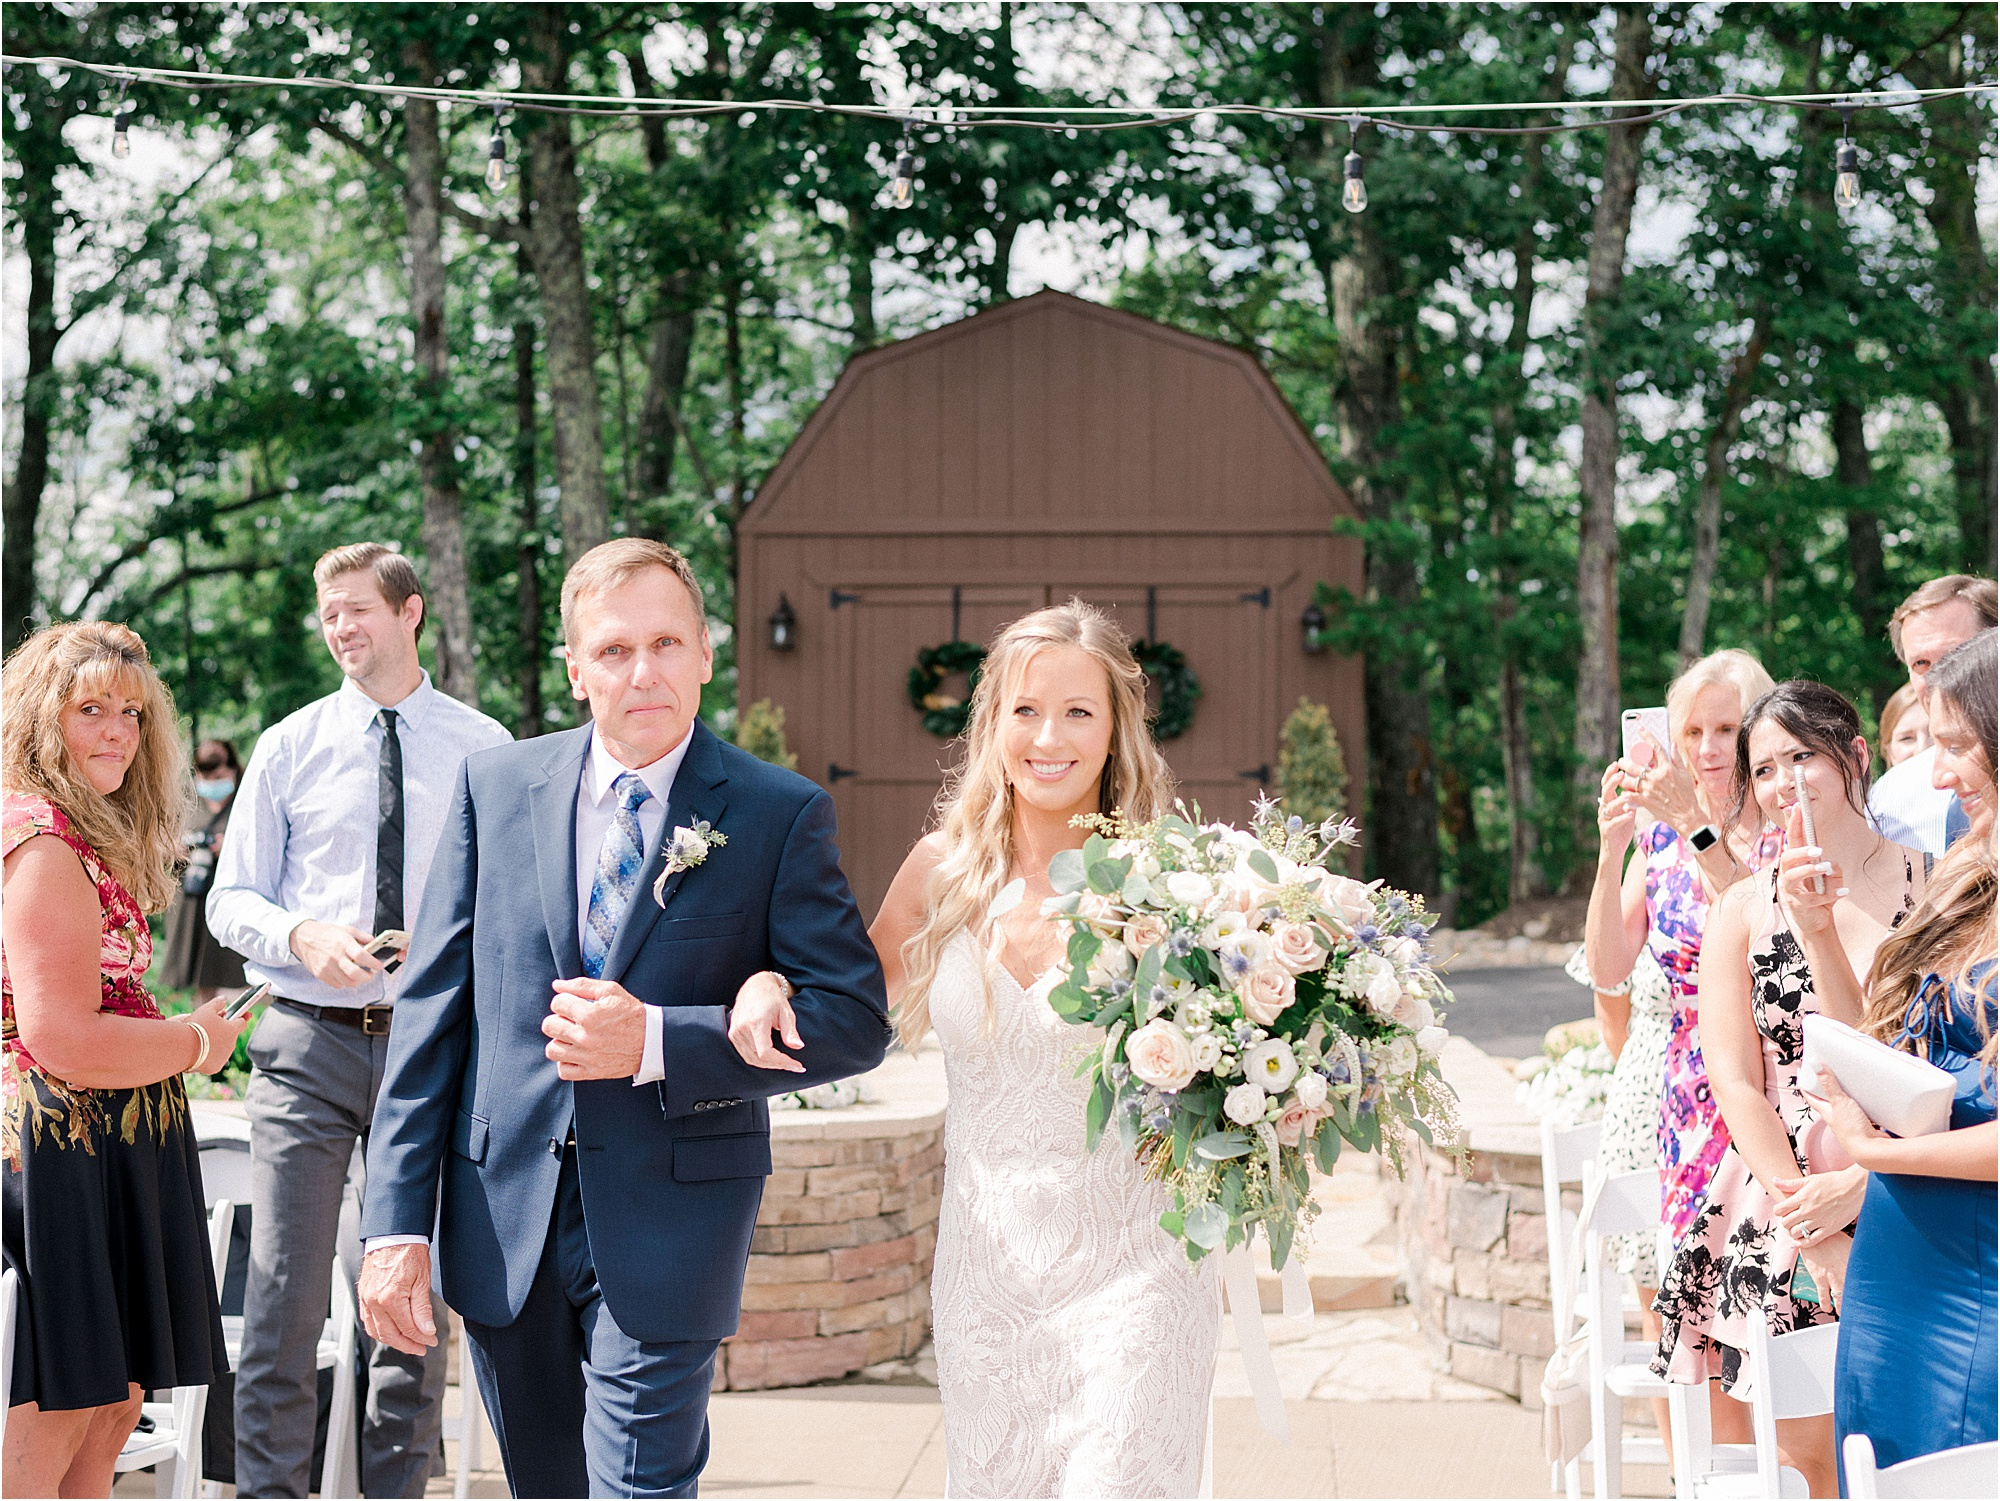 bride walking with father down the aisle at wedding